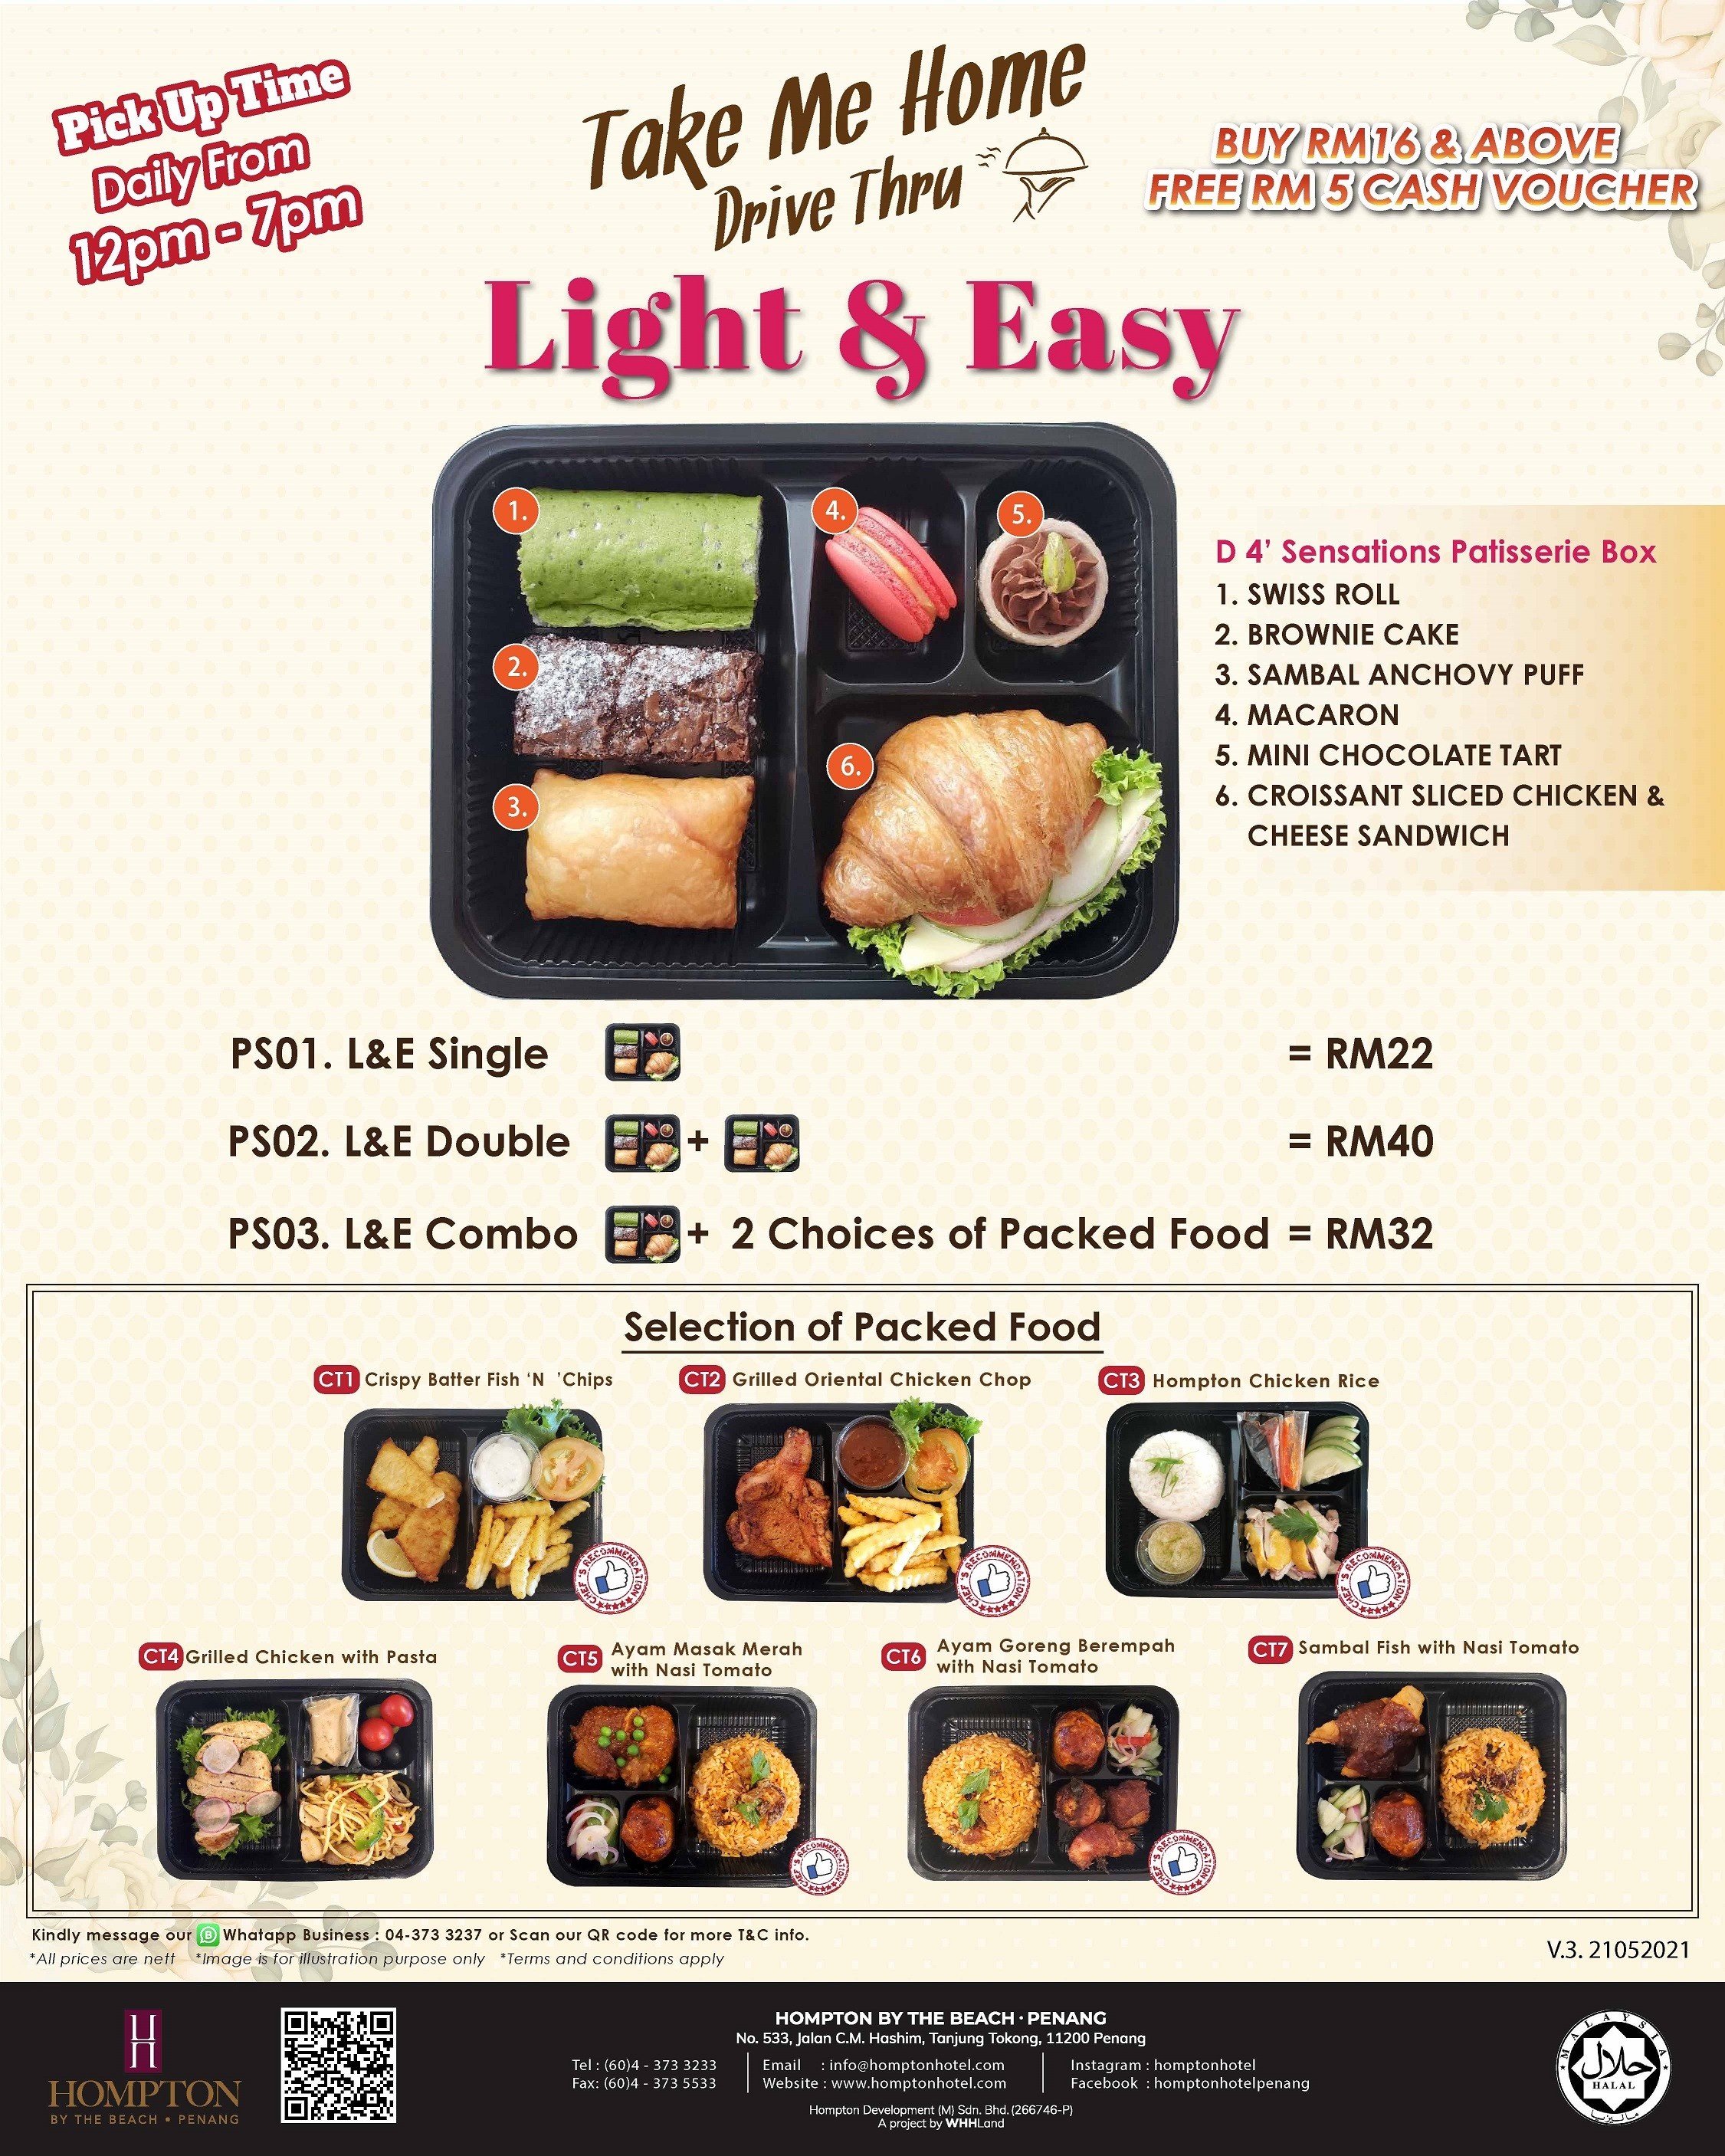 Light and Easy by Hompton by the Beach Penang